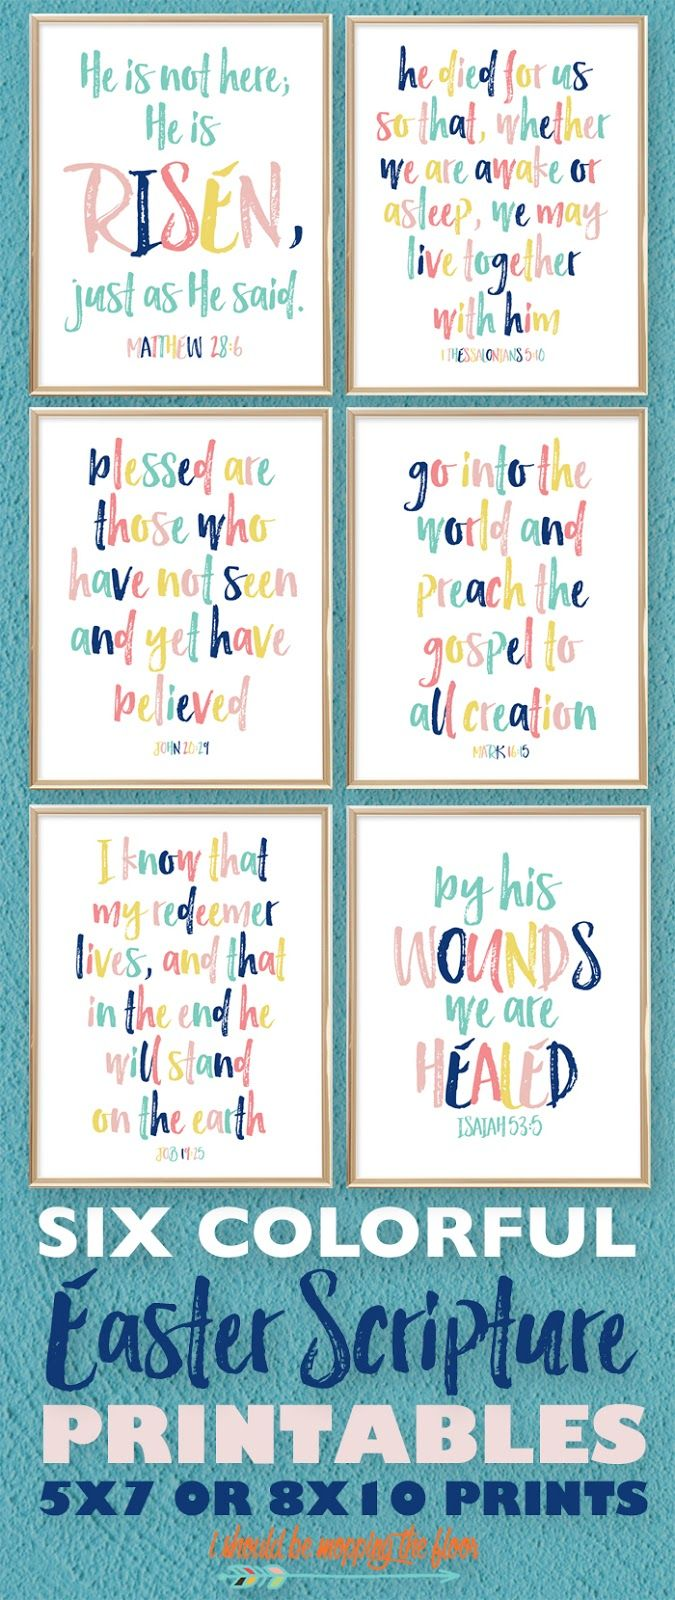 Six Colorful Printable Easter Bible Scriptures for any Spring Decor